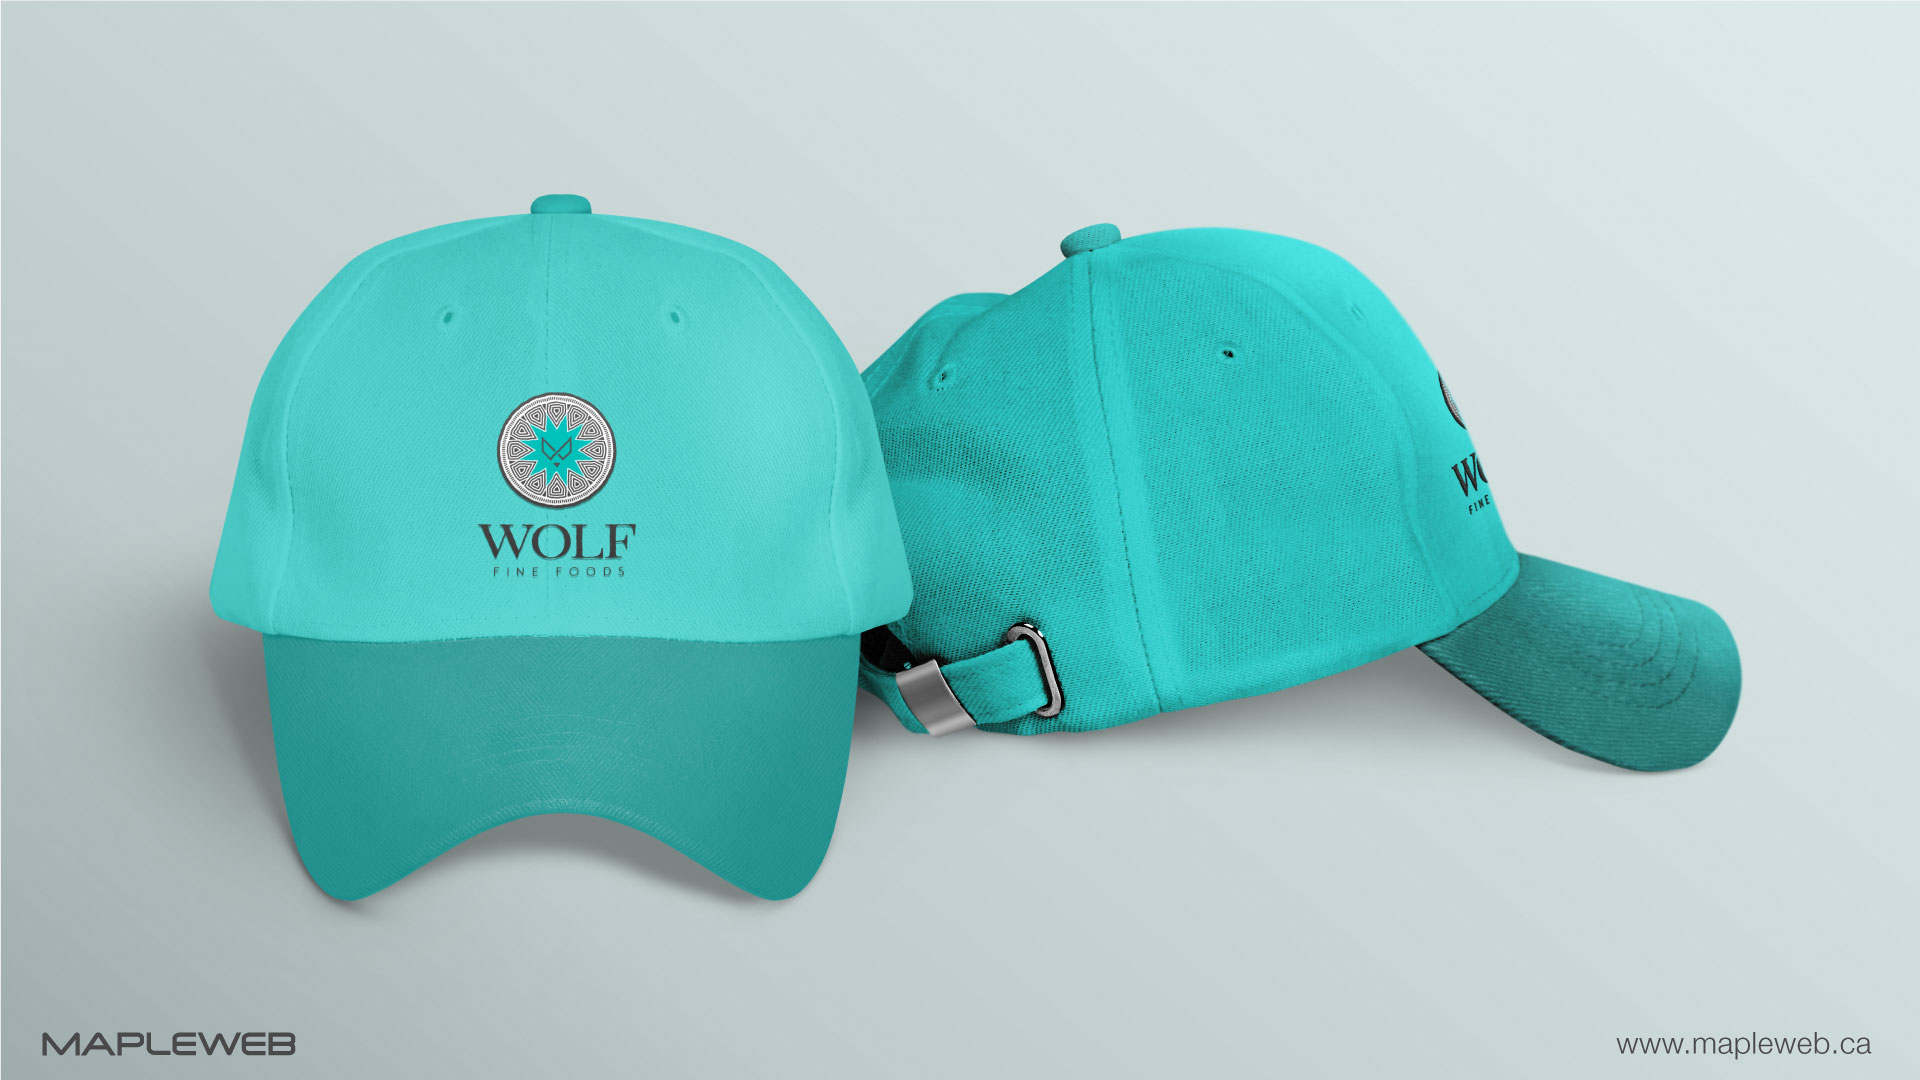 wolf-fine-foods-brand-logo-design-by-mapleweb-vancouver-canada-cap-mock